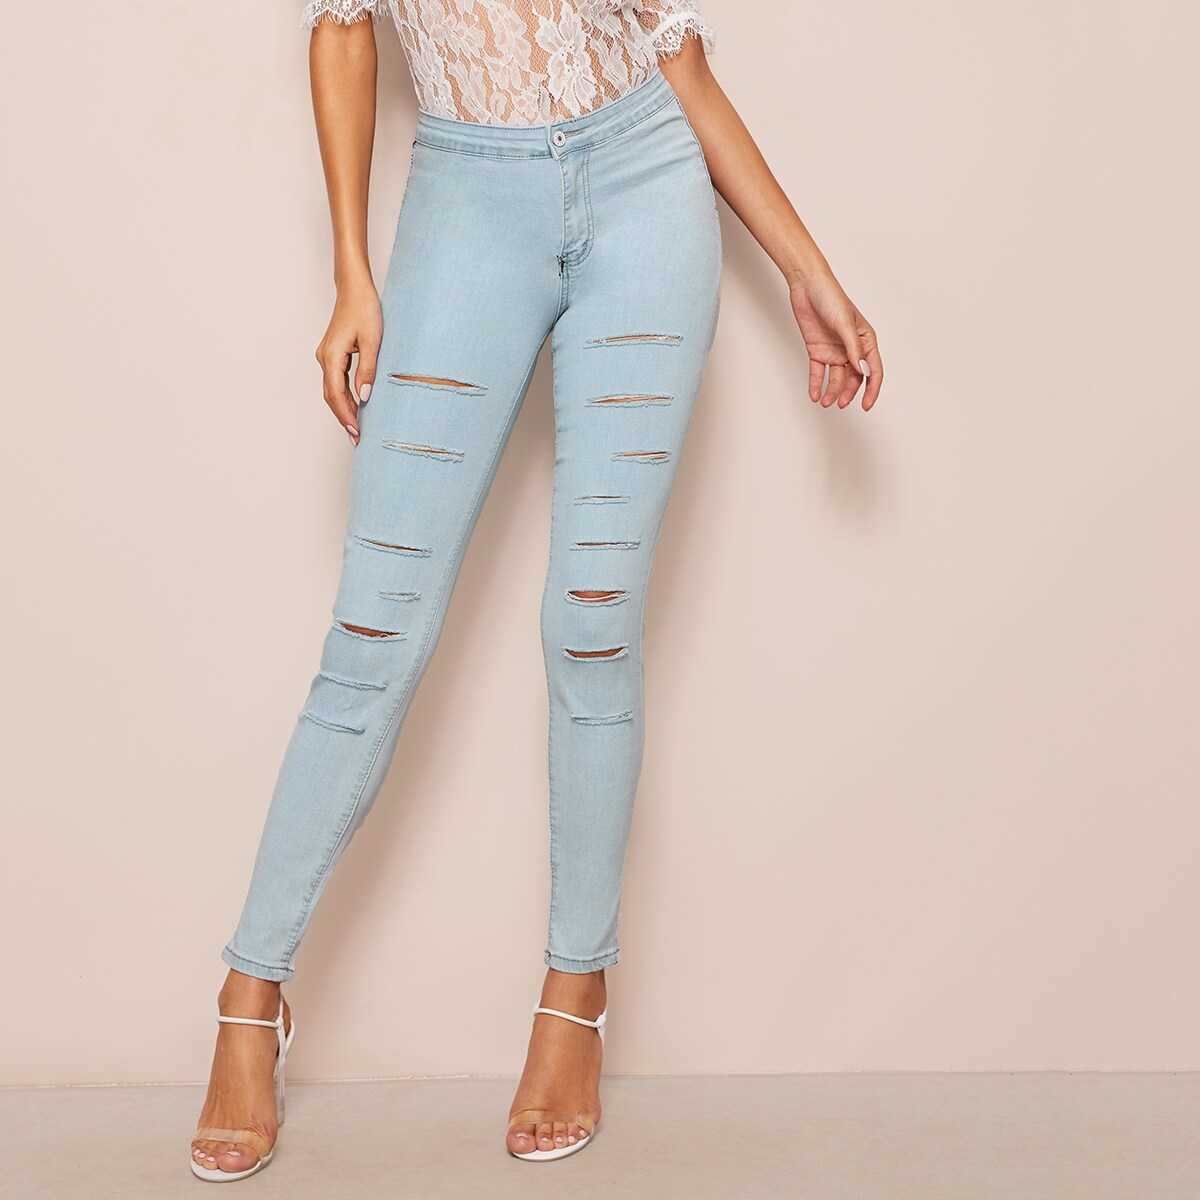 Light Wash Rips Detail Skinny Jeans - Shein - GOOFASH